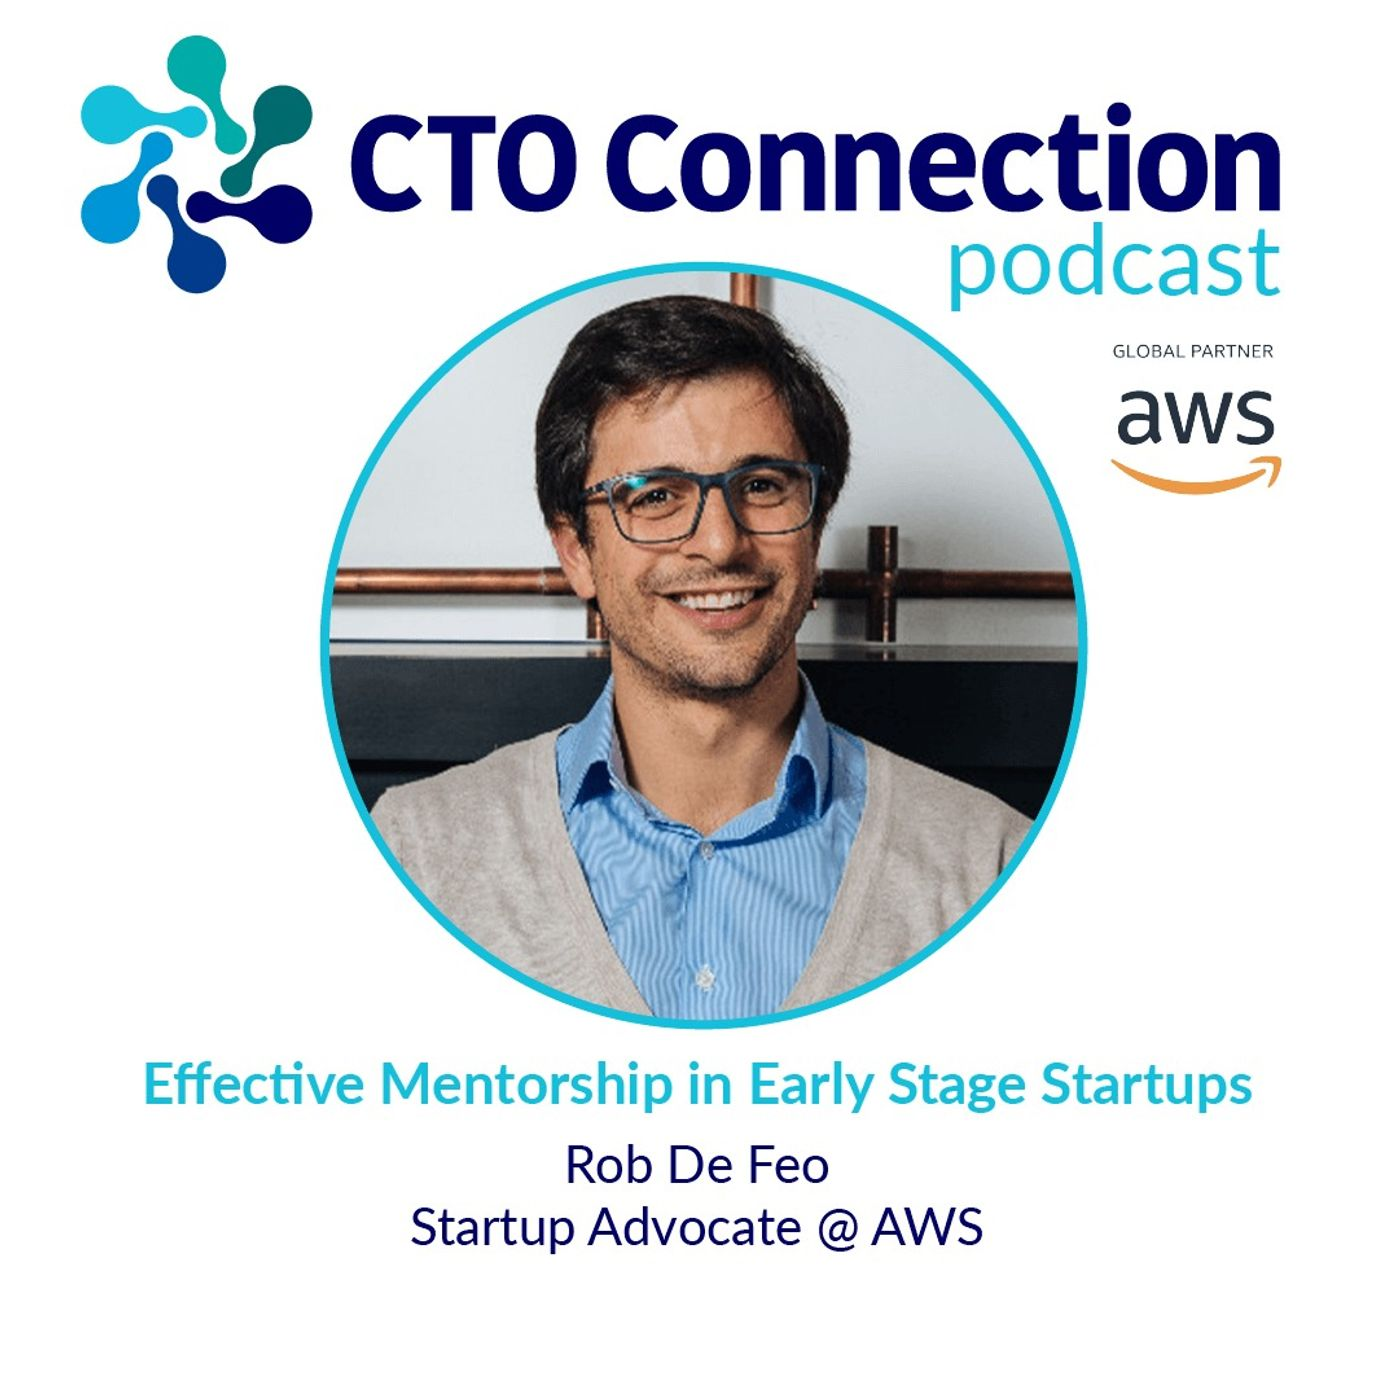 Effective Mentorship in Early Stage Startups with Rob De Feo